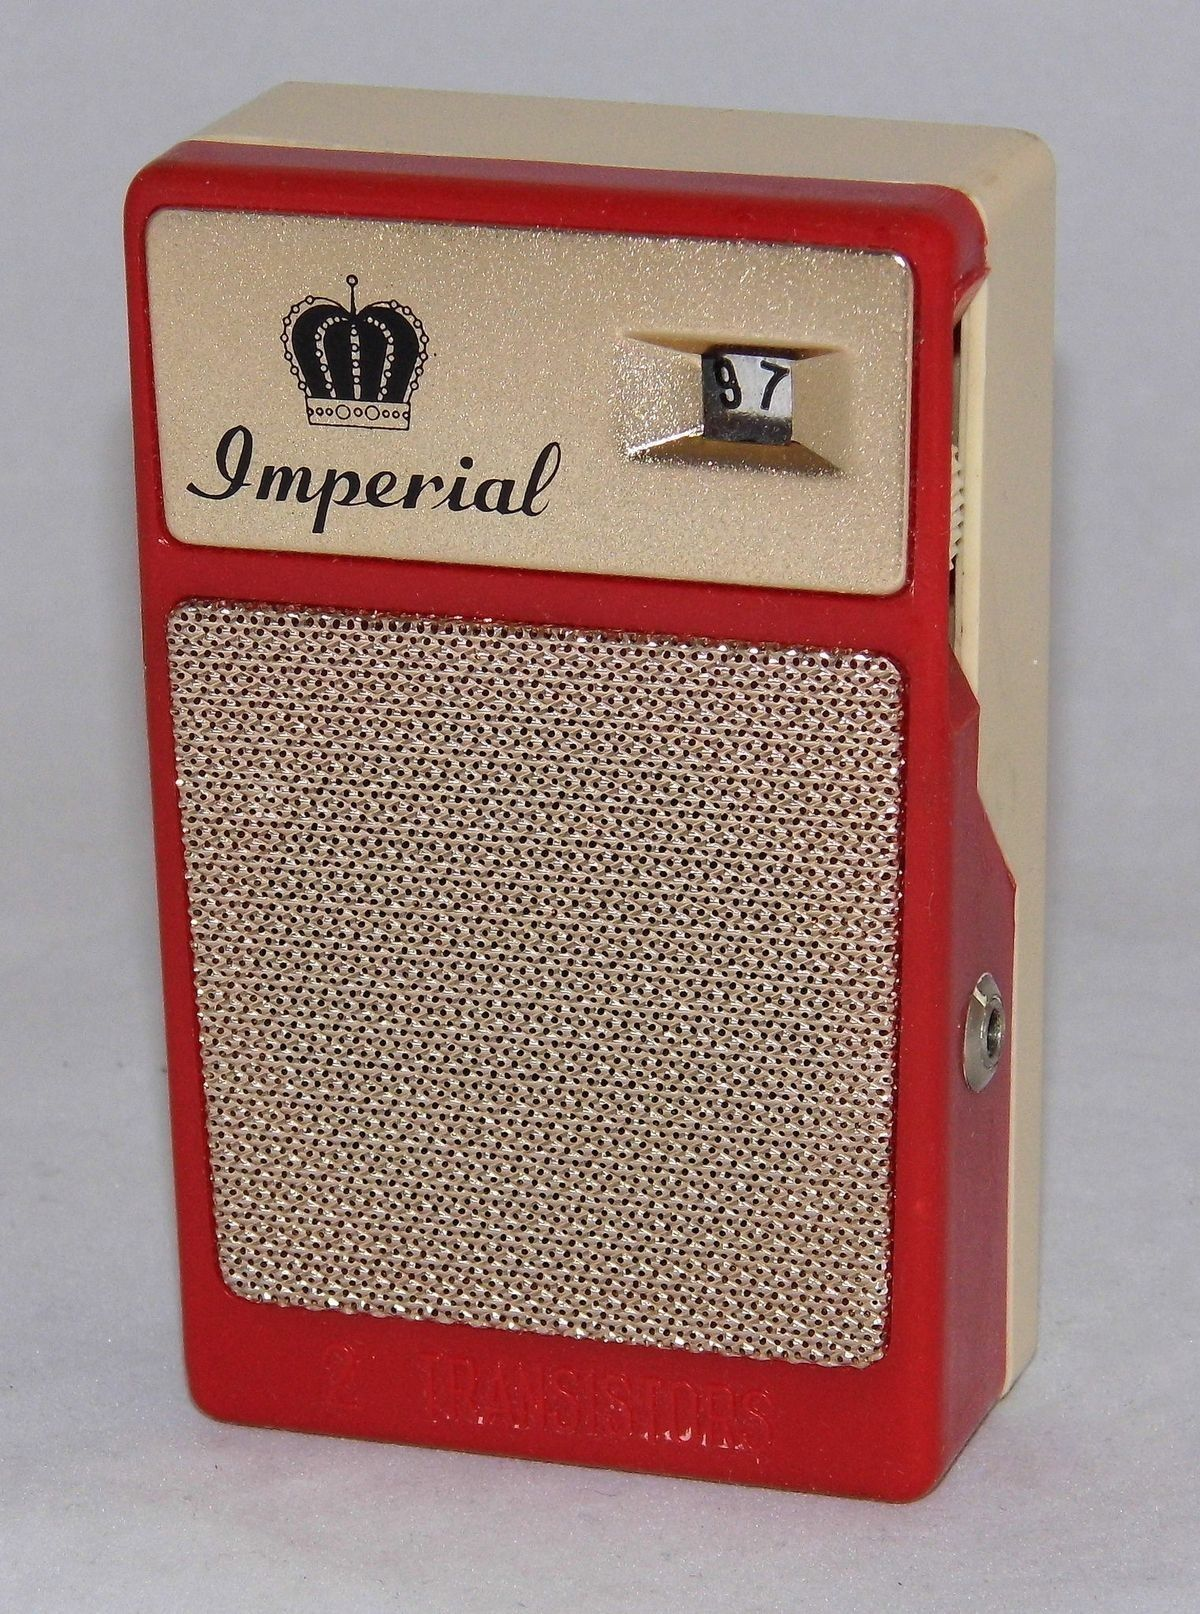 Imperial Am Two Transistor Radio Made In Japan1960s Vintage Atomic Frequency Standard